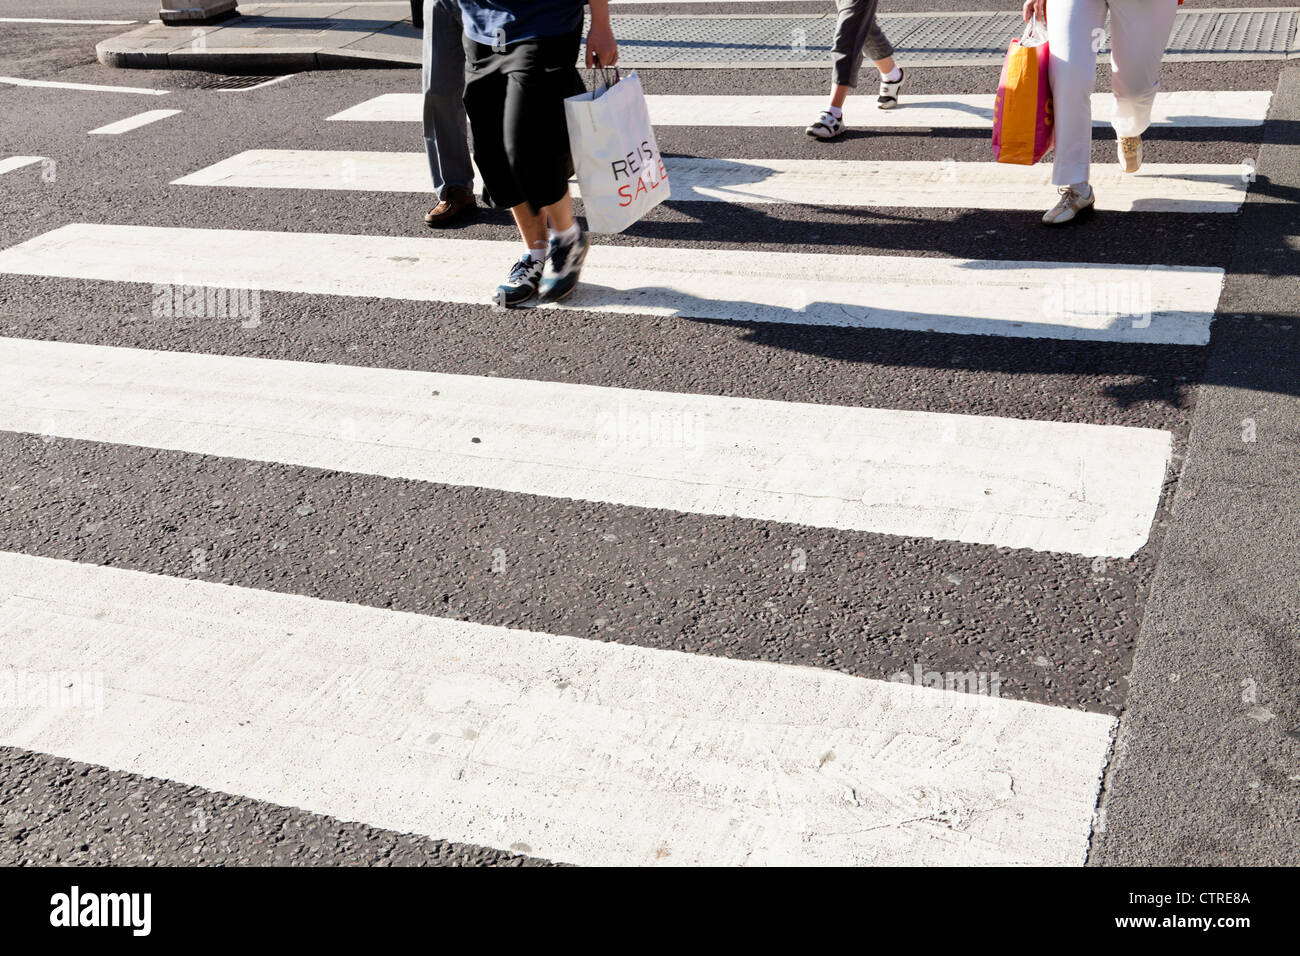 People crossing the road on a zebra crossing, England, UK Stock Photo